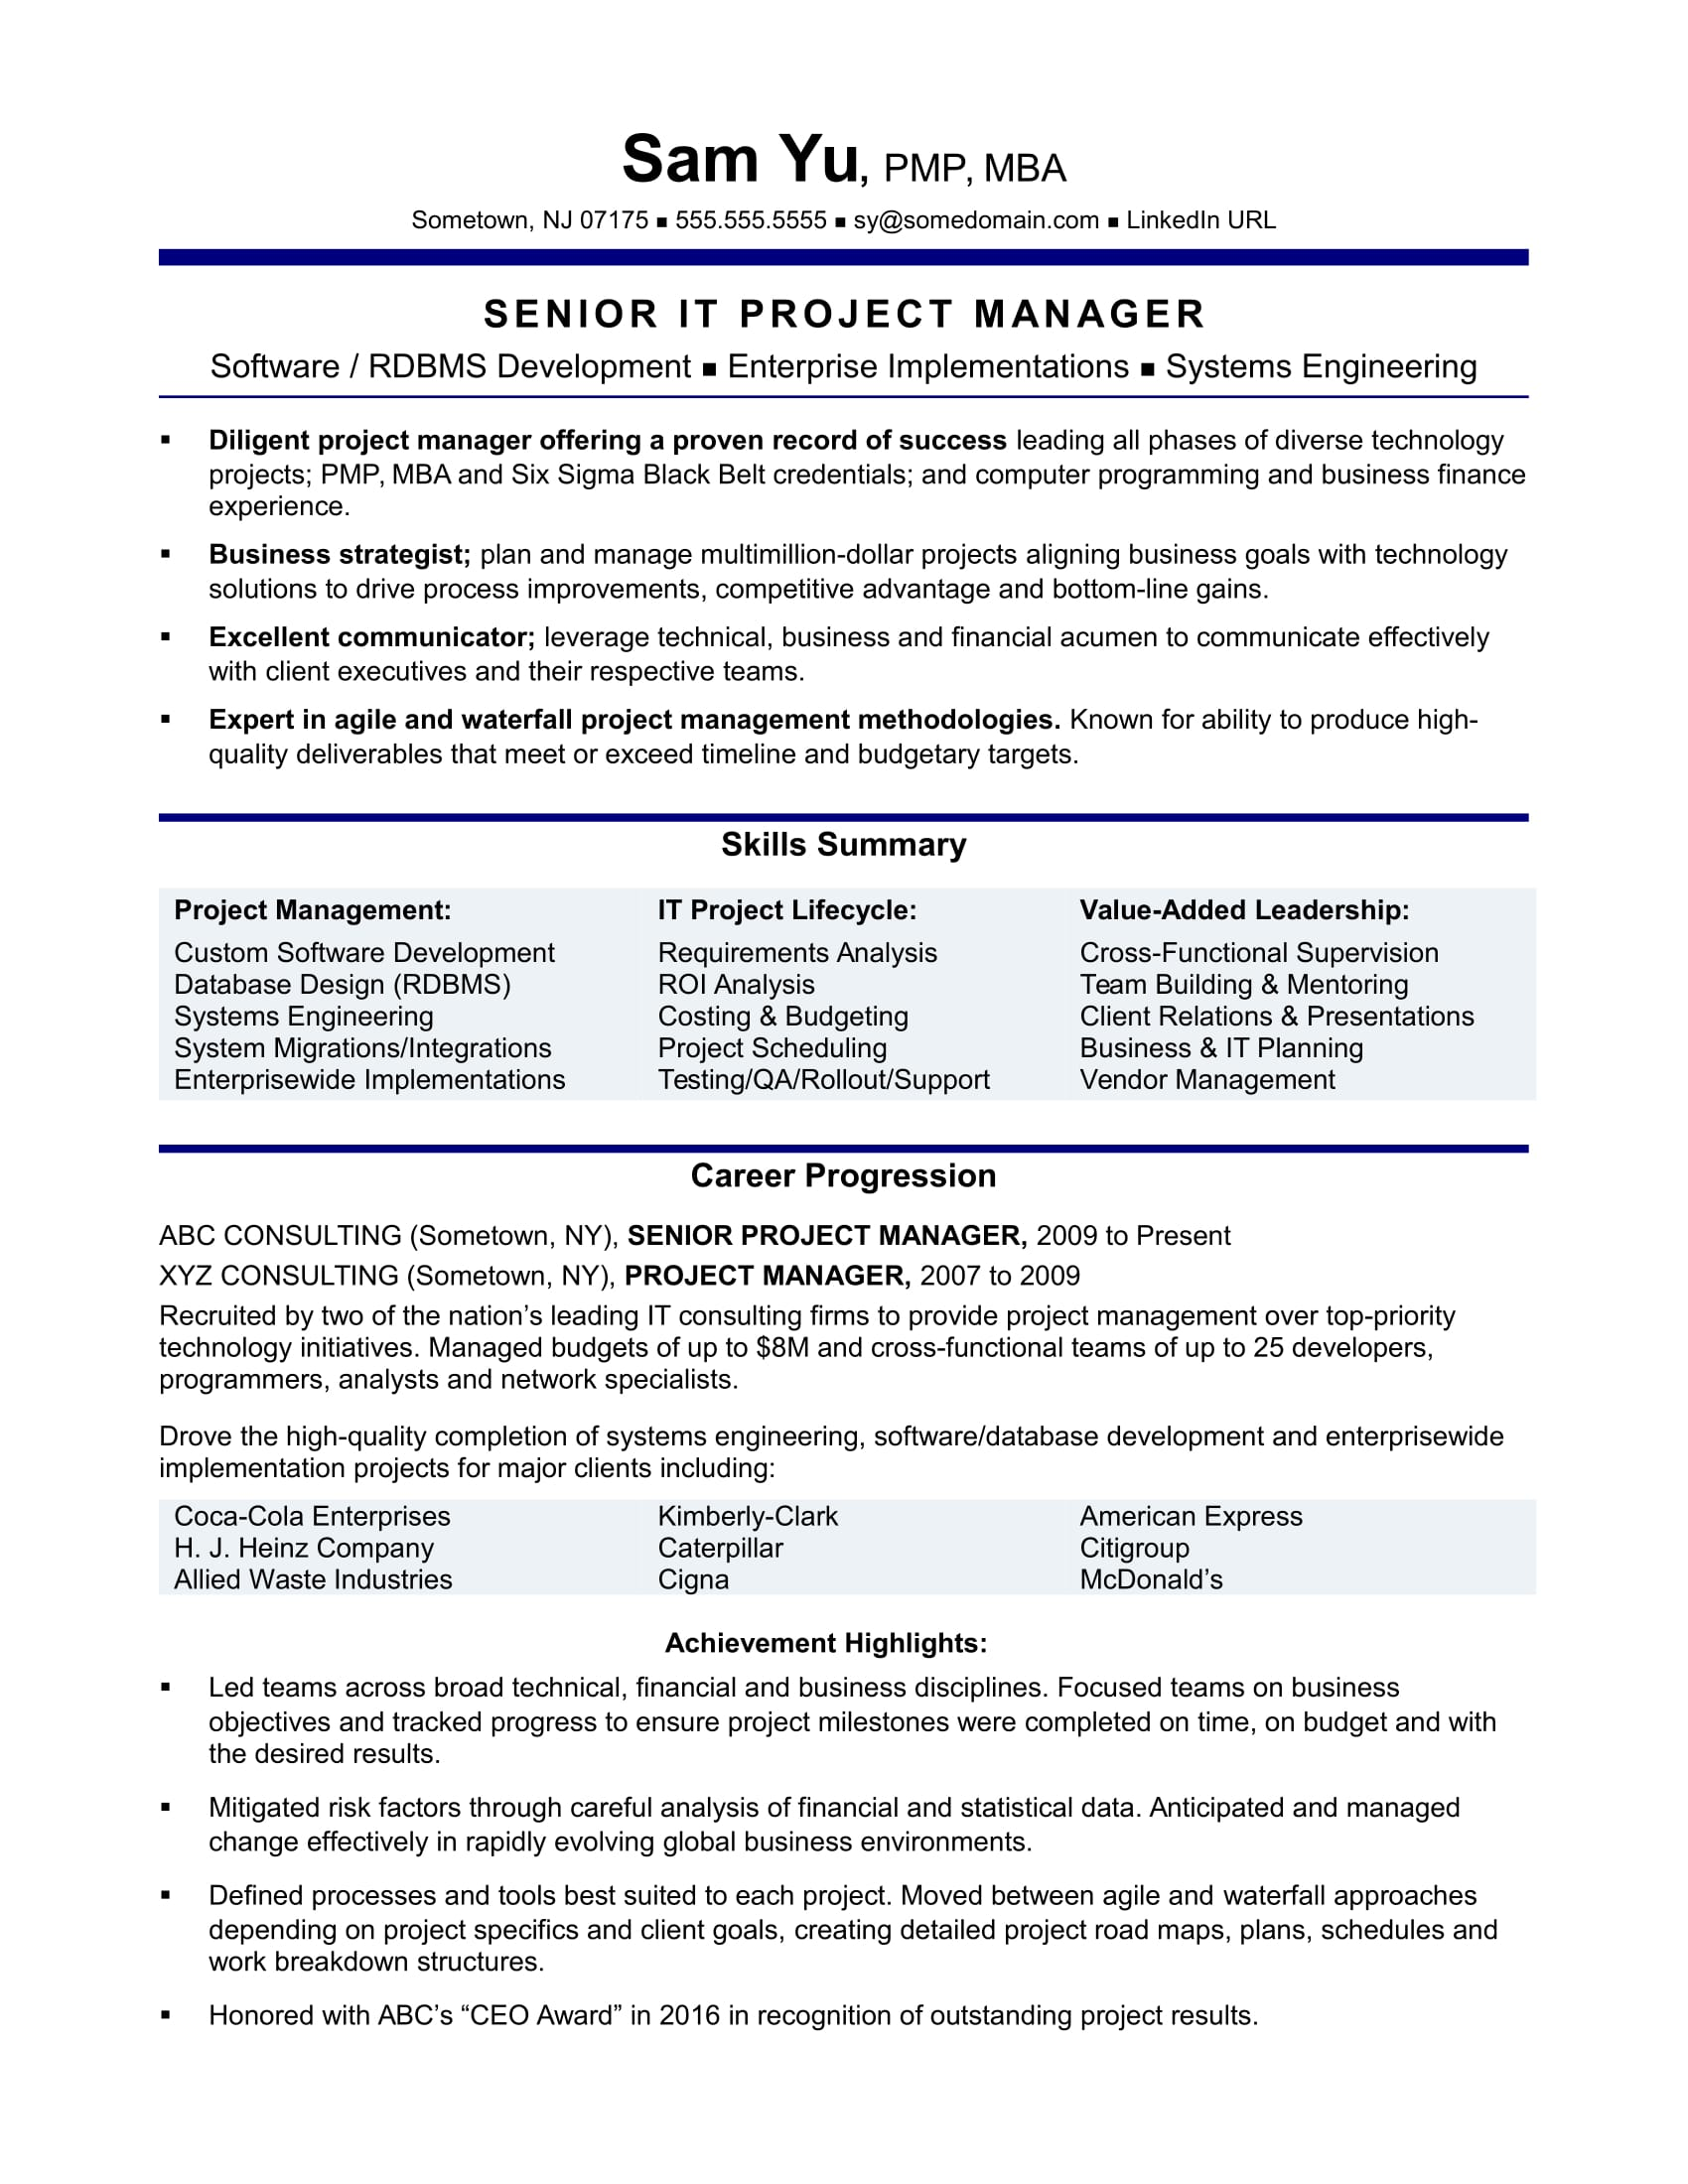 experienced it project manager resume sample monster best programming projects for Resume Best Programming Projects For Resume